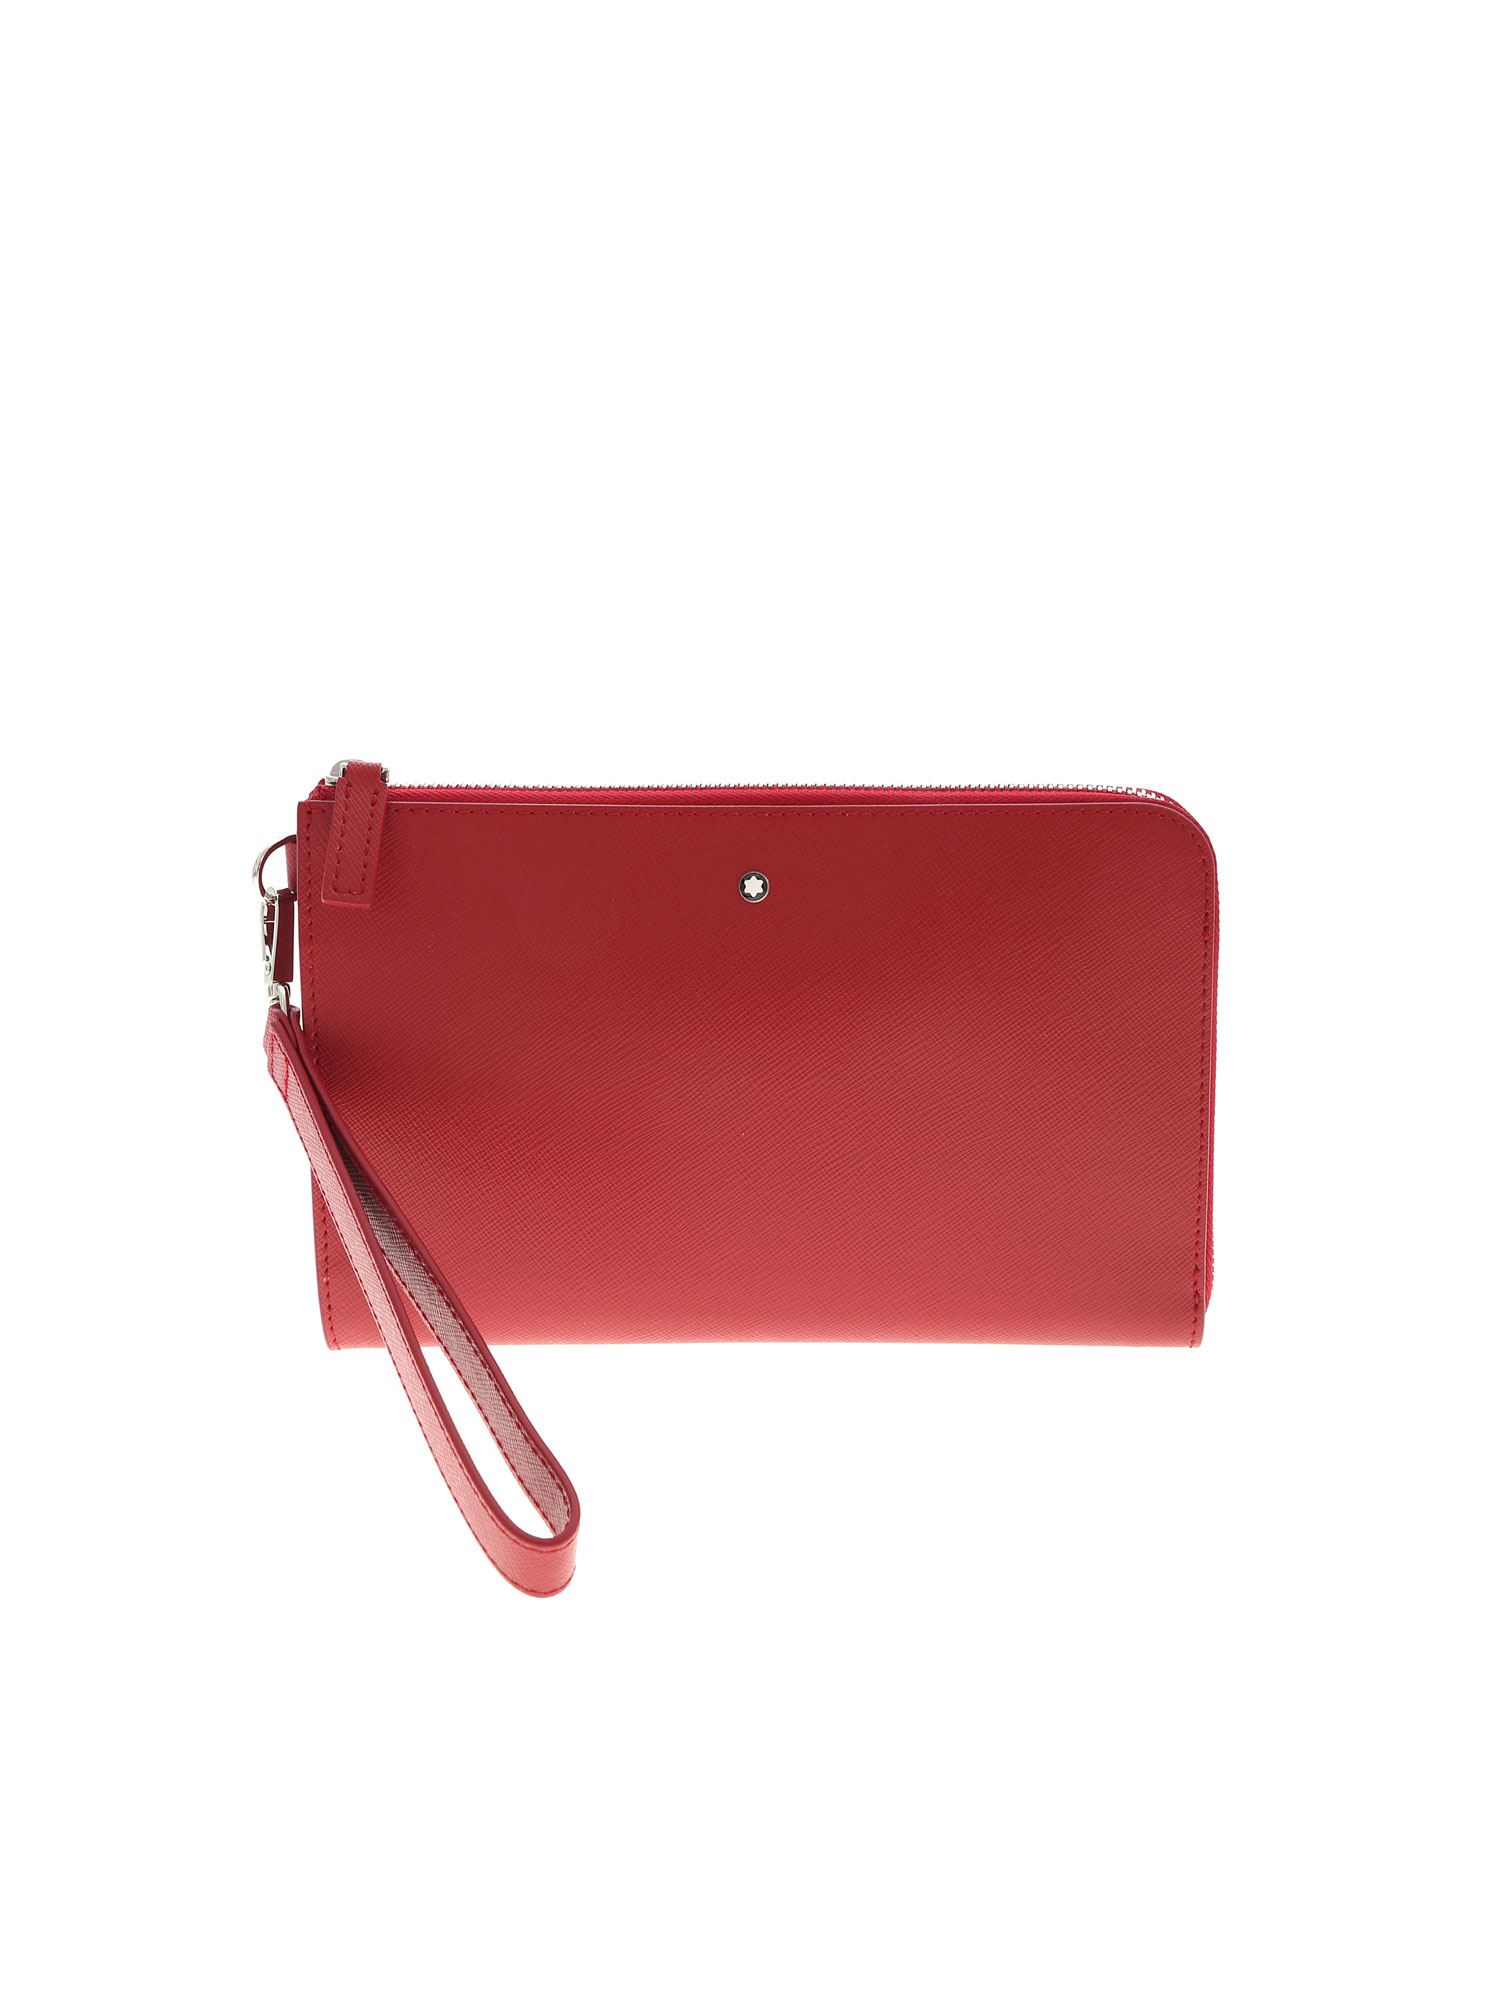 Montblanc Leathers LOGO DETAIL BAG IN RED